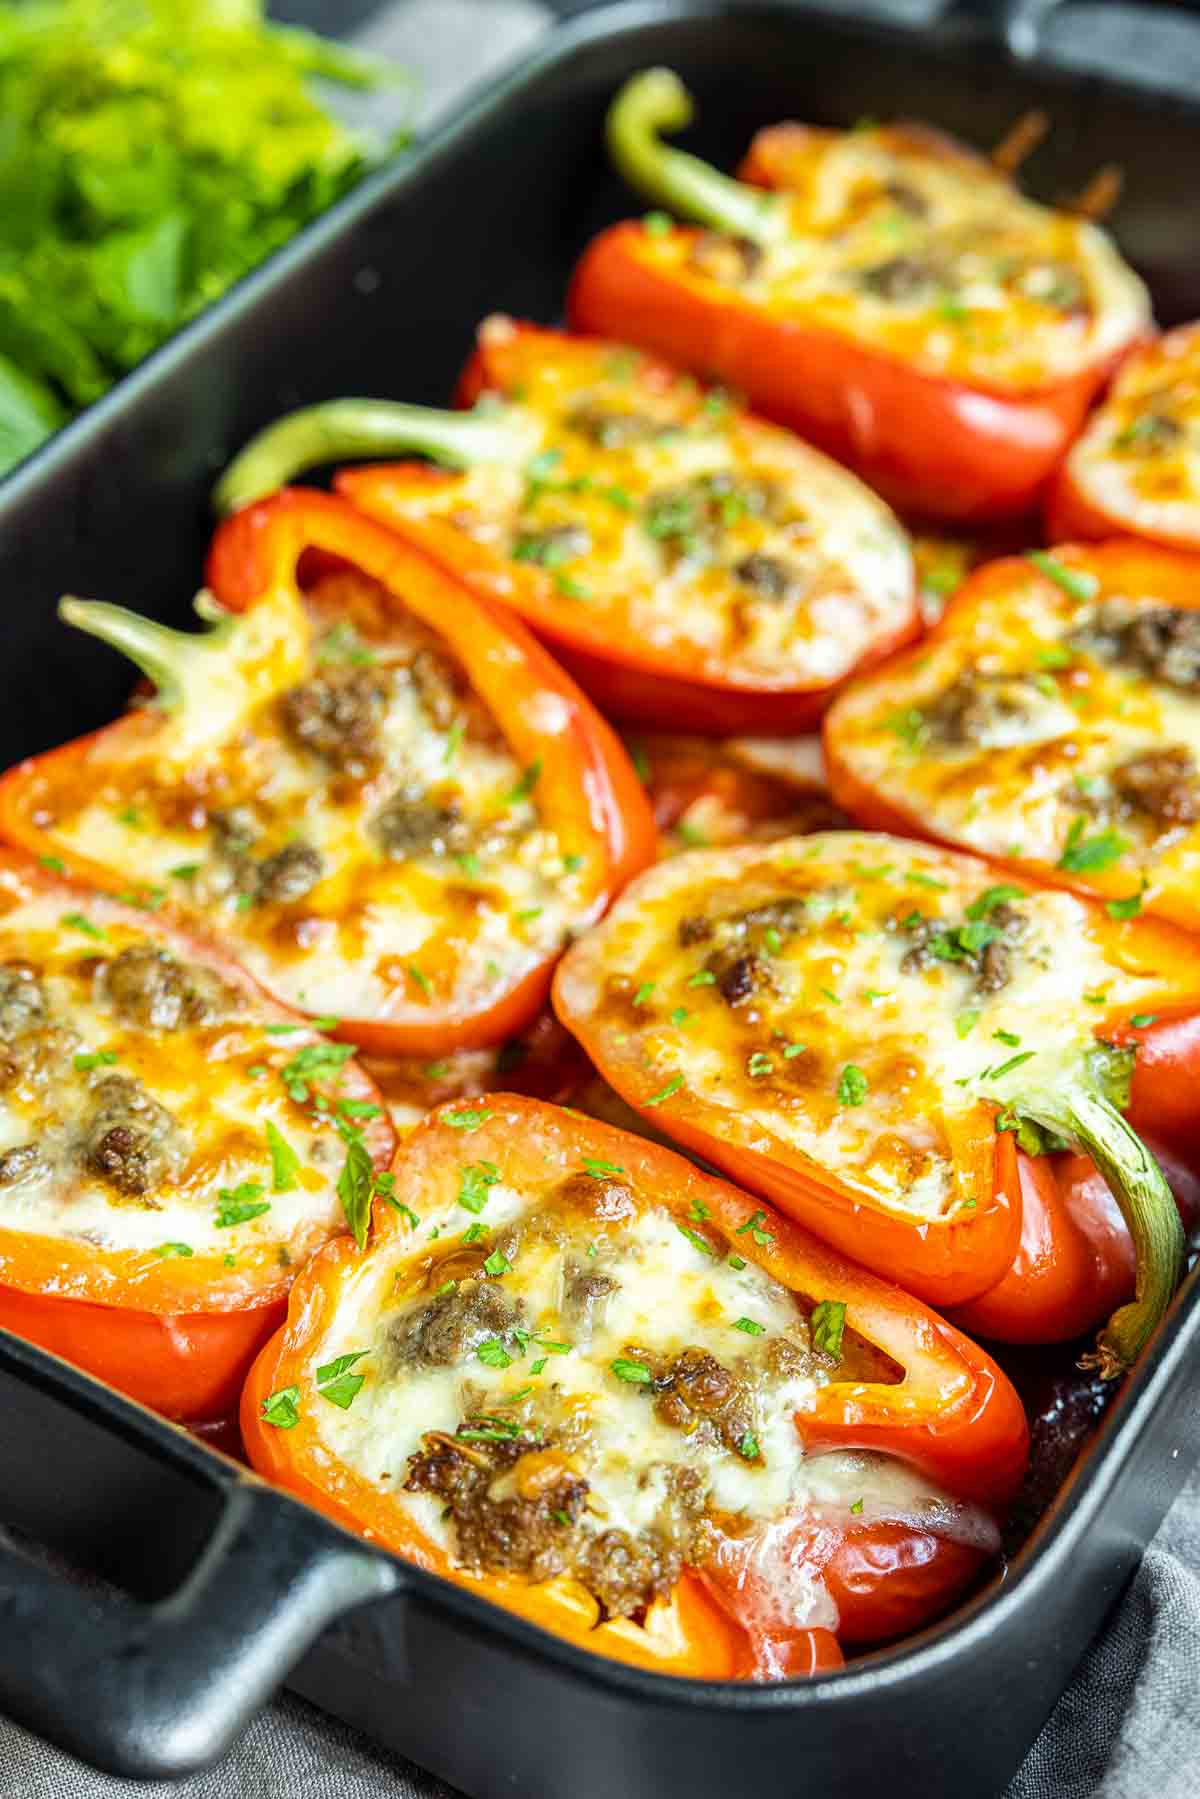 Lasagna Stuffed Peppers stuffed with beef and cheese